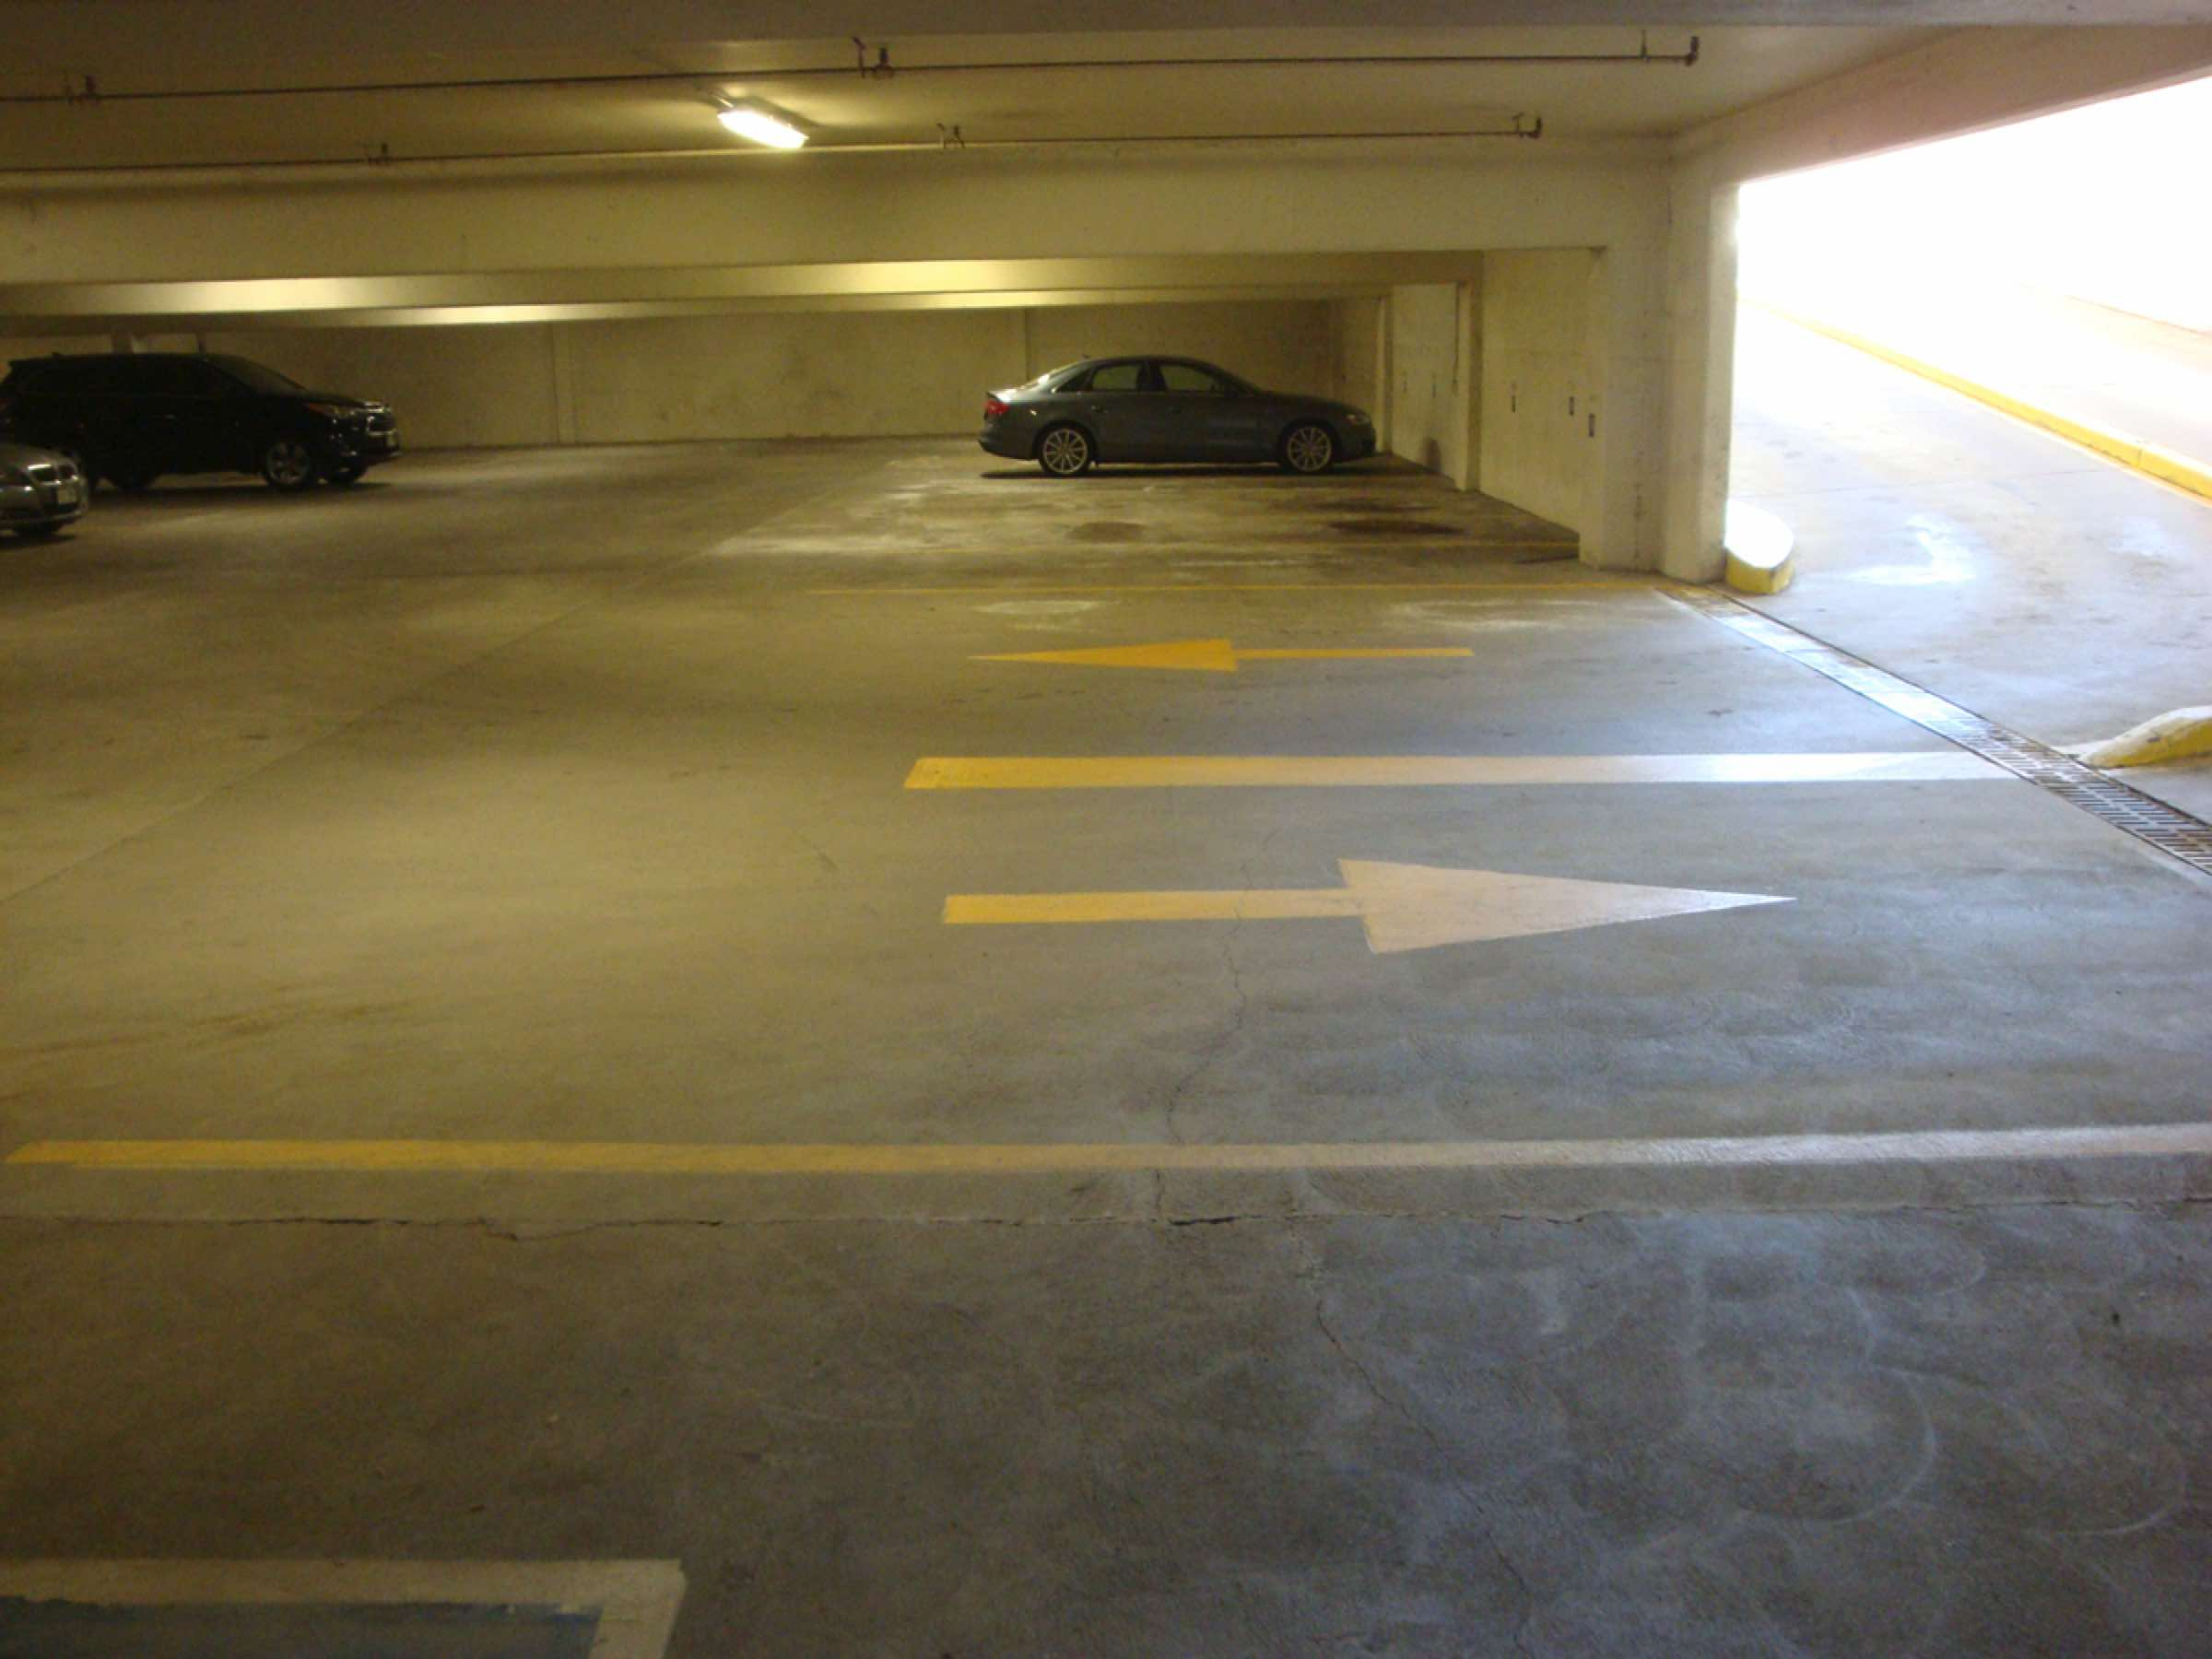 Parking Lot Garage Arrows Painting